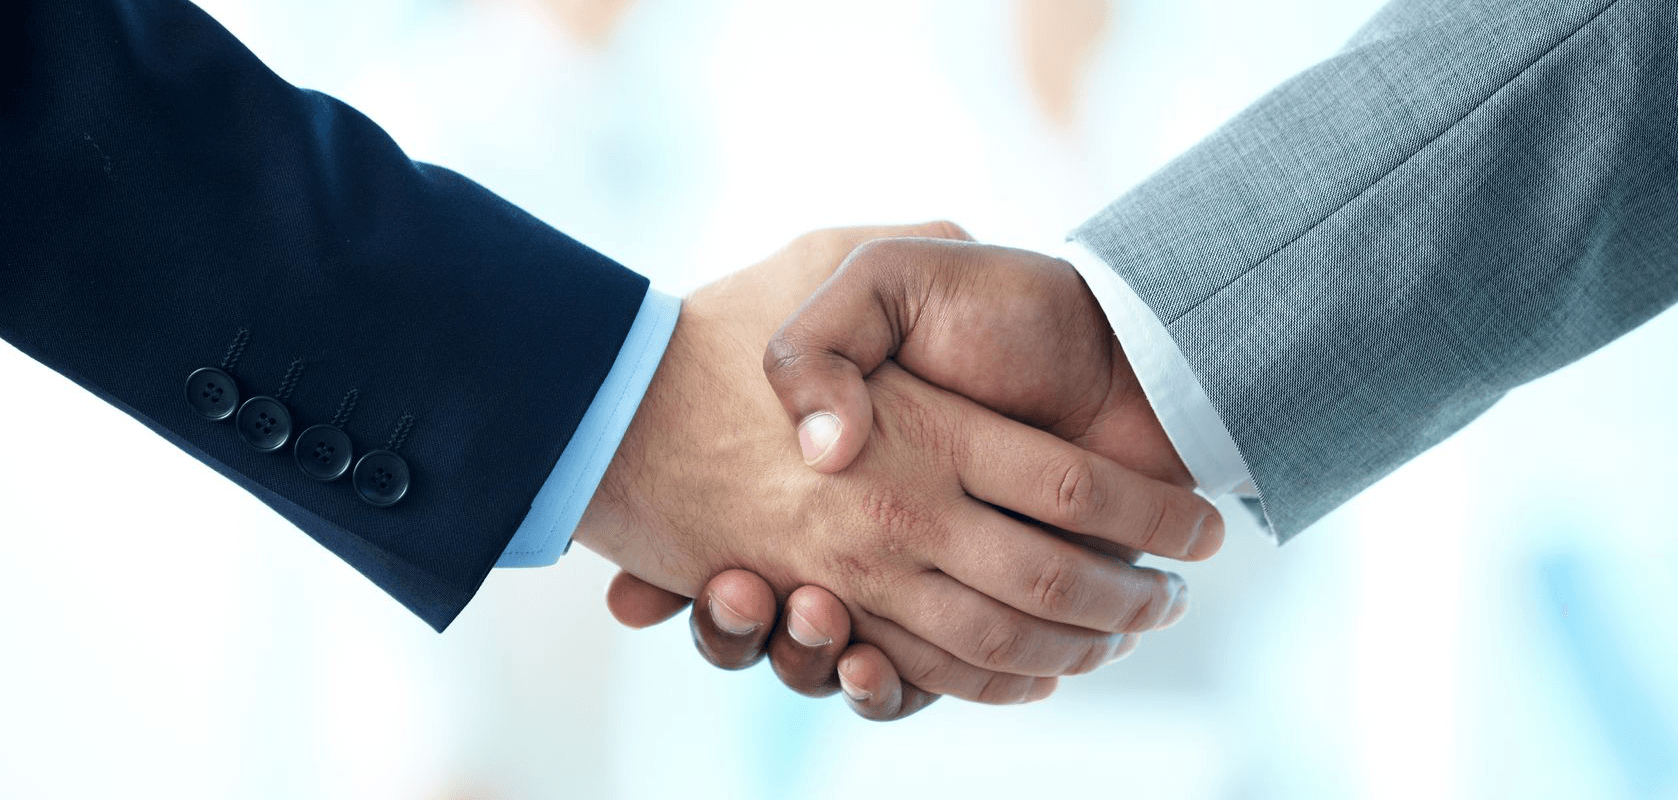 the best business partner Businesspartners - join the largest global community of entrepreneurs to find business partners and start or grow a business today we provide a professional platform to connect with partners, entrepreneurs, investors, business opportunities, sales leads and global business ideas.